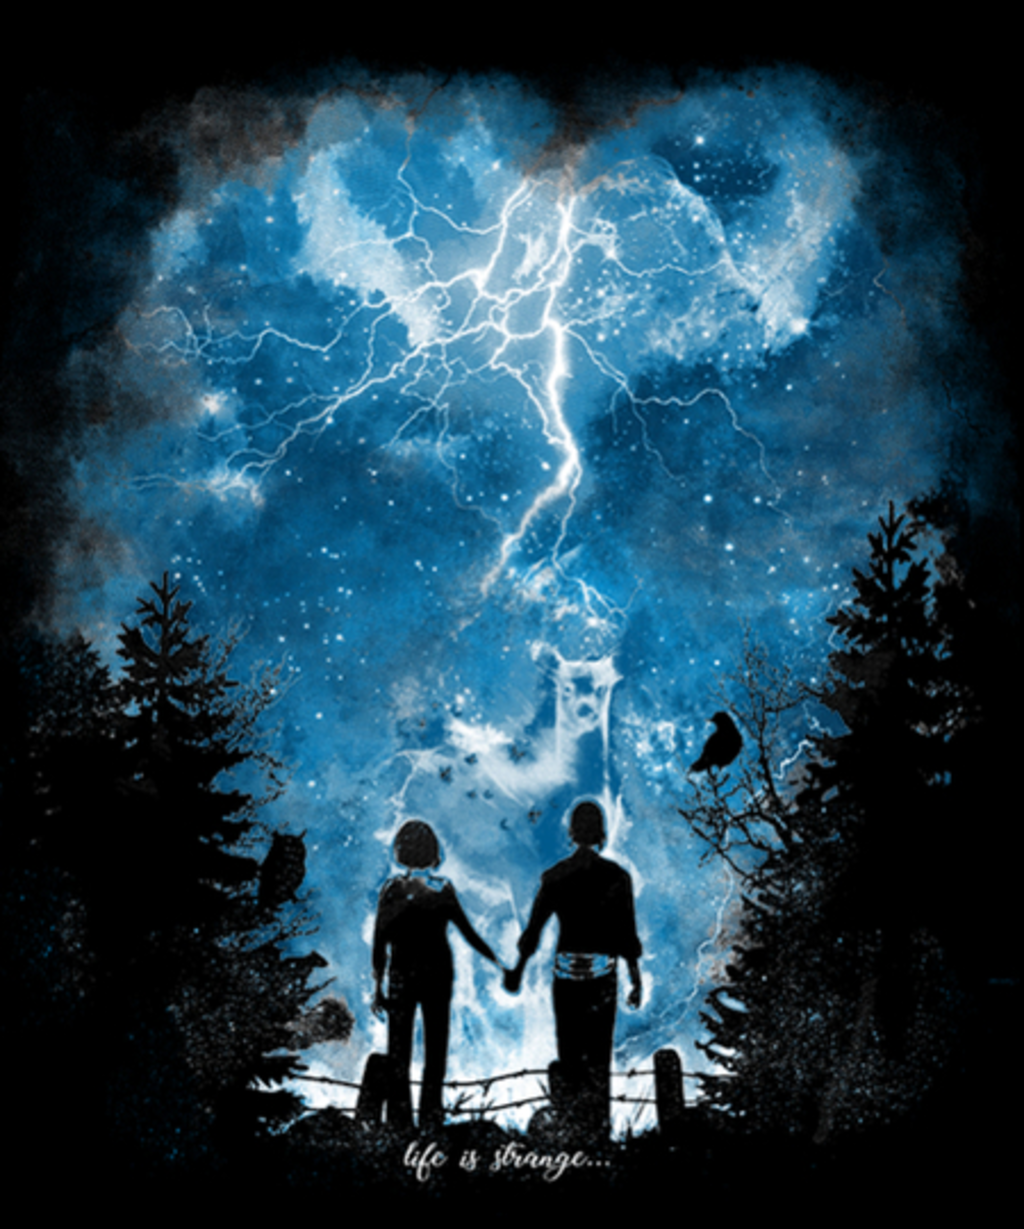 Qwertee: The storm of life